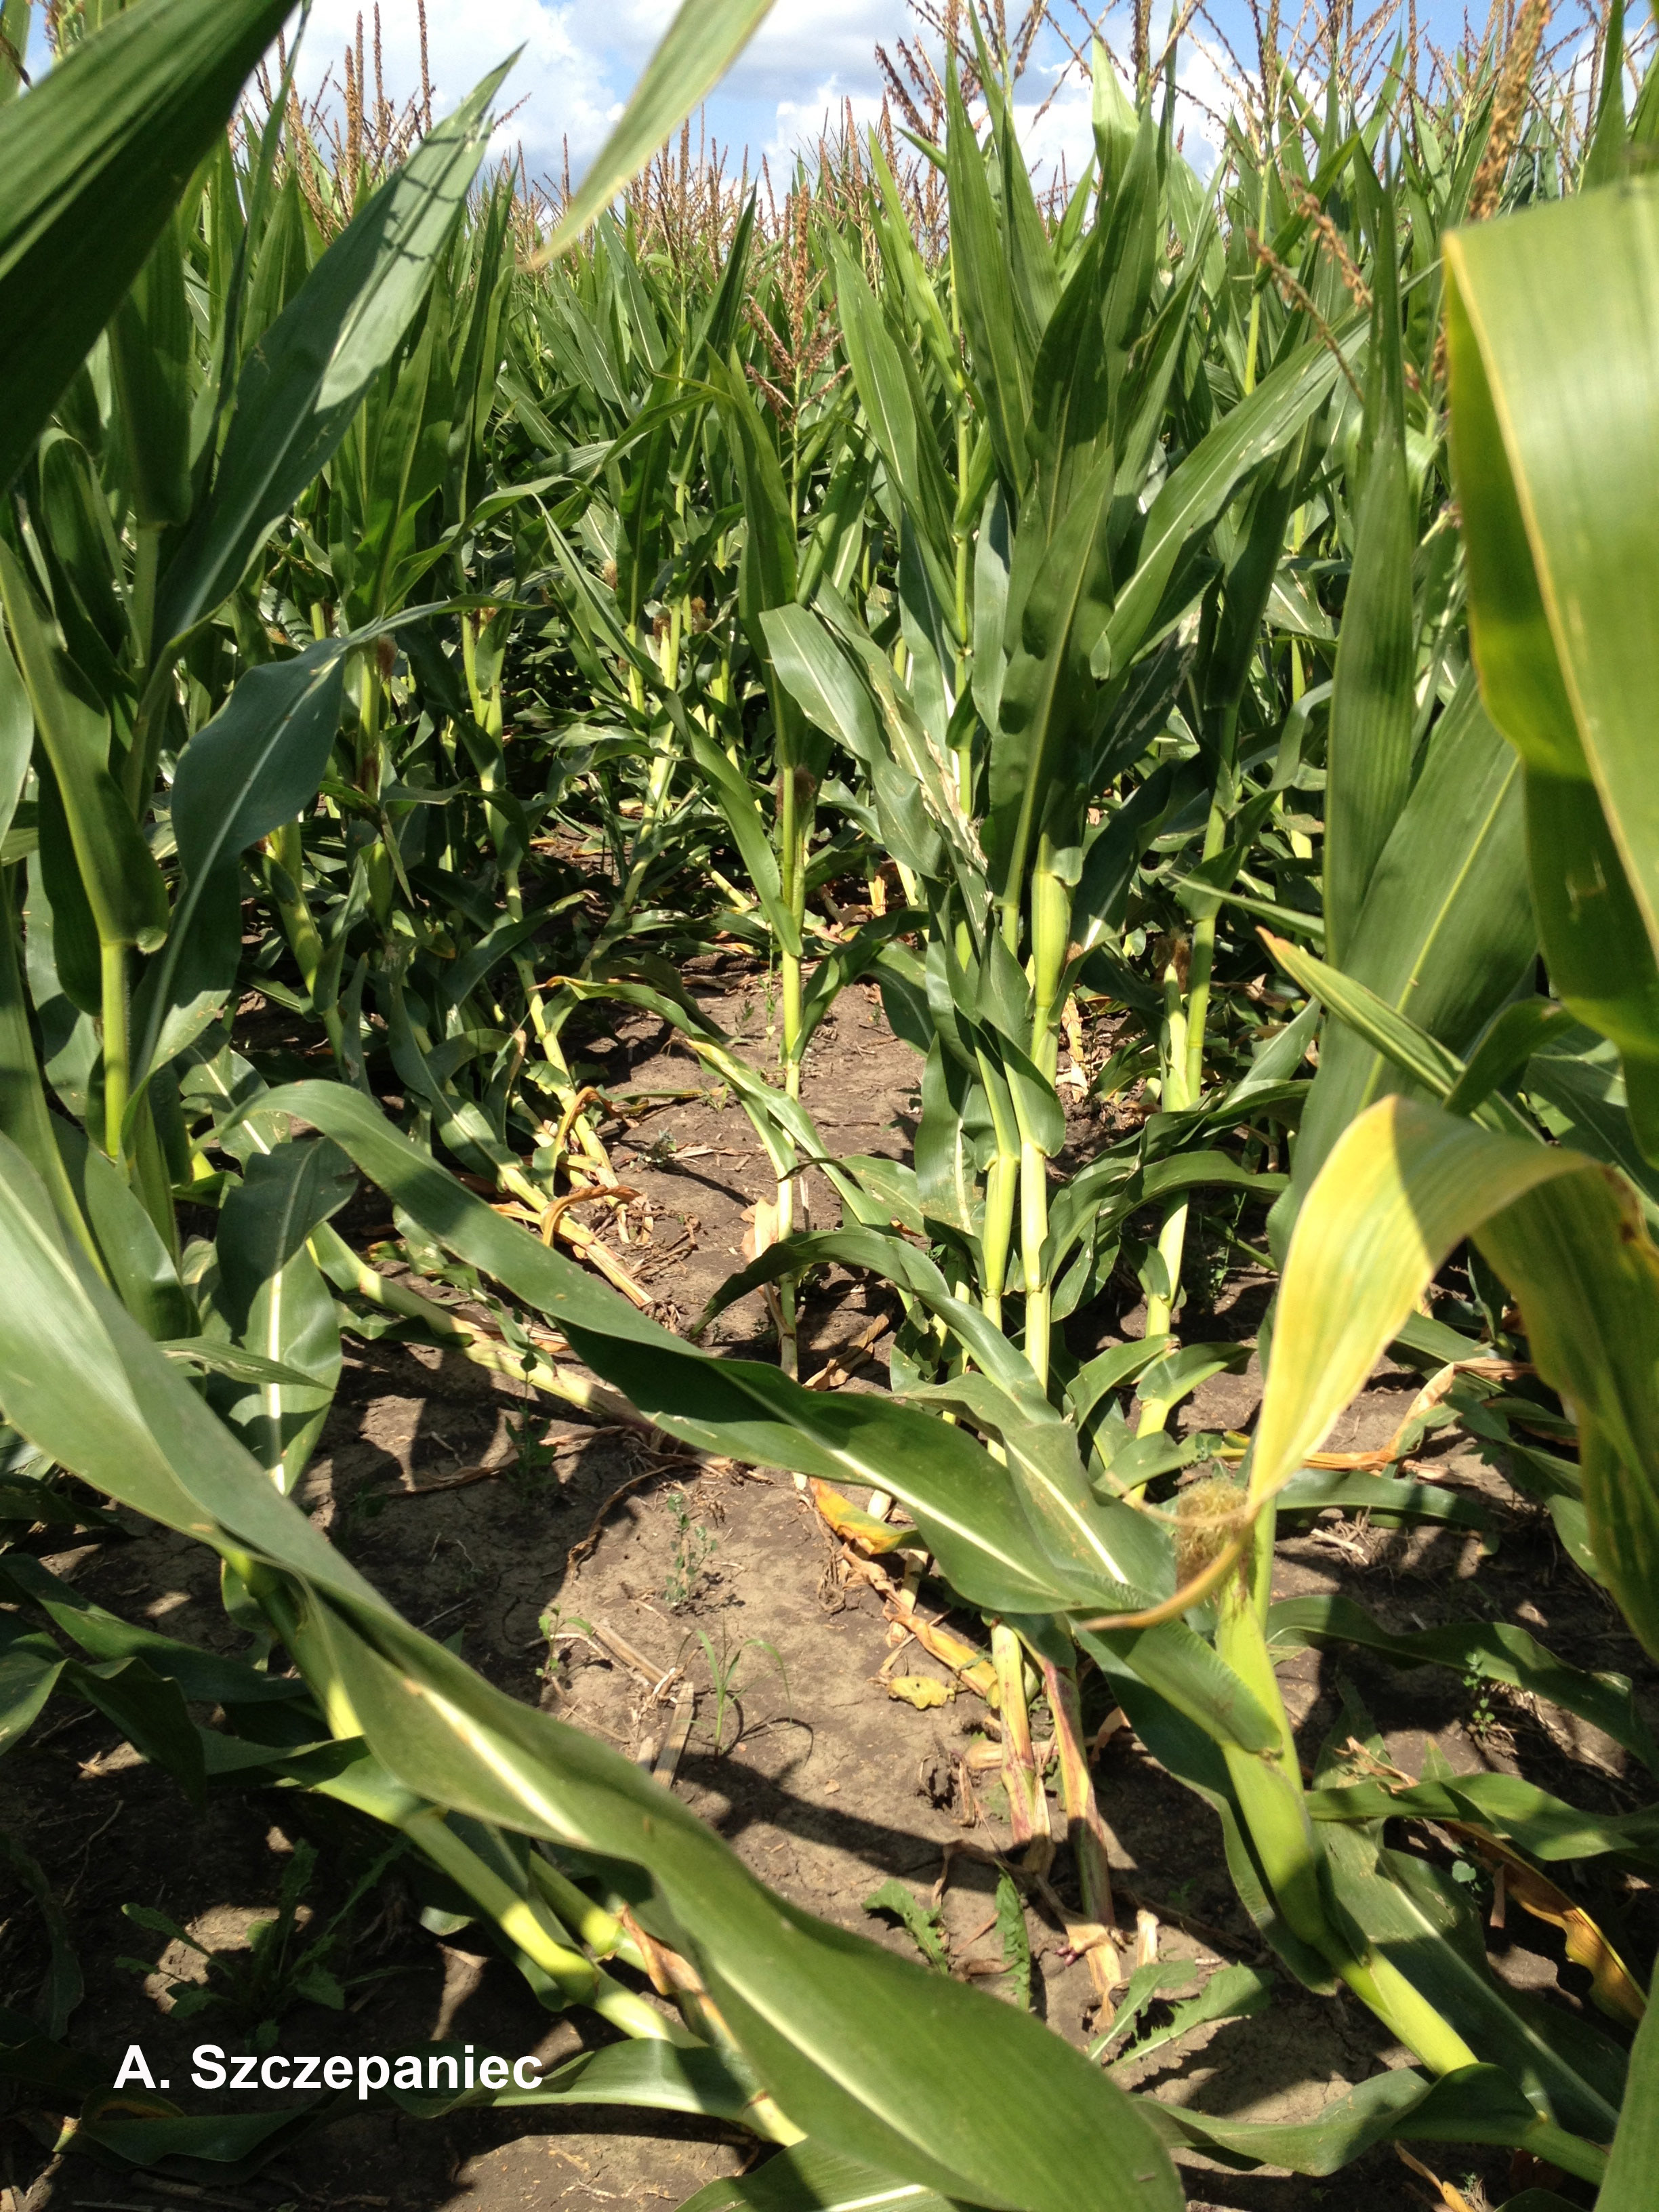 Figure 2. Corn rootworm damage in late-planted corn. This field was planted late the previous year and acted as a trap crop for adult corn root worms.